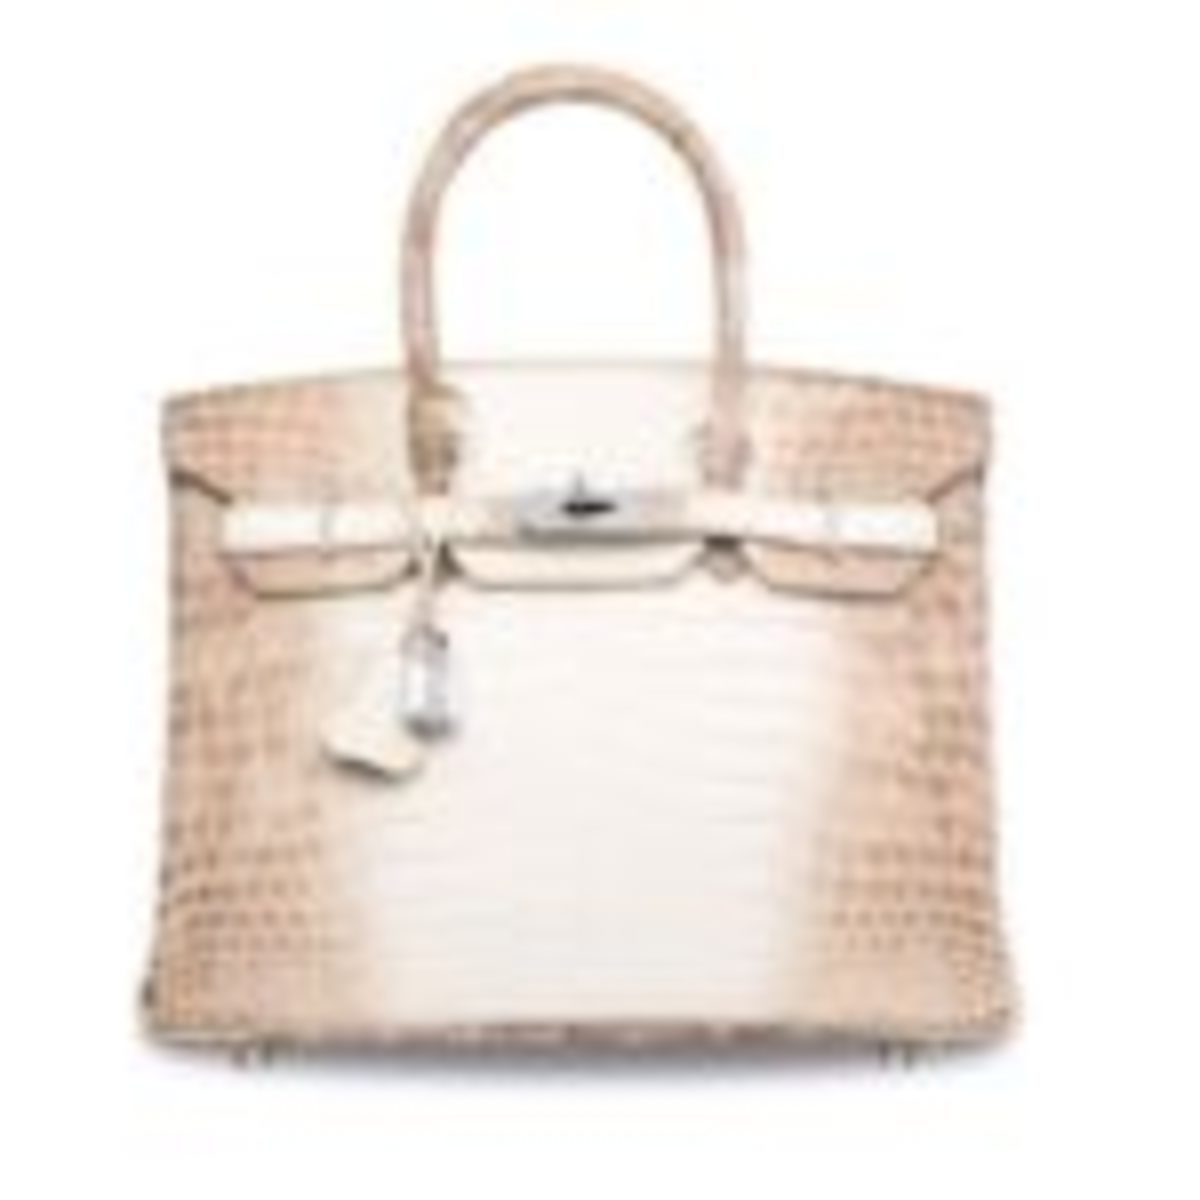 The matte white Himalaya Niloticus Crocodile Diamond bag by Hermes Birkin. It is the current luxury handbag world record holder sold for £208,250.